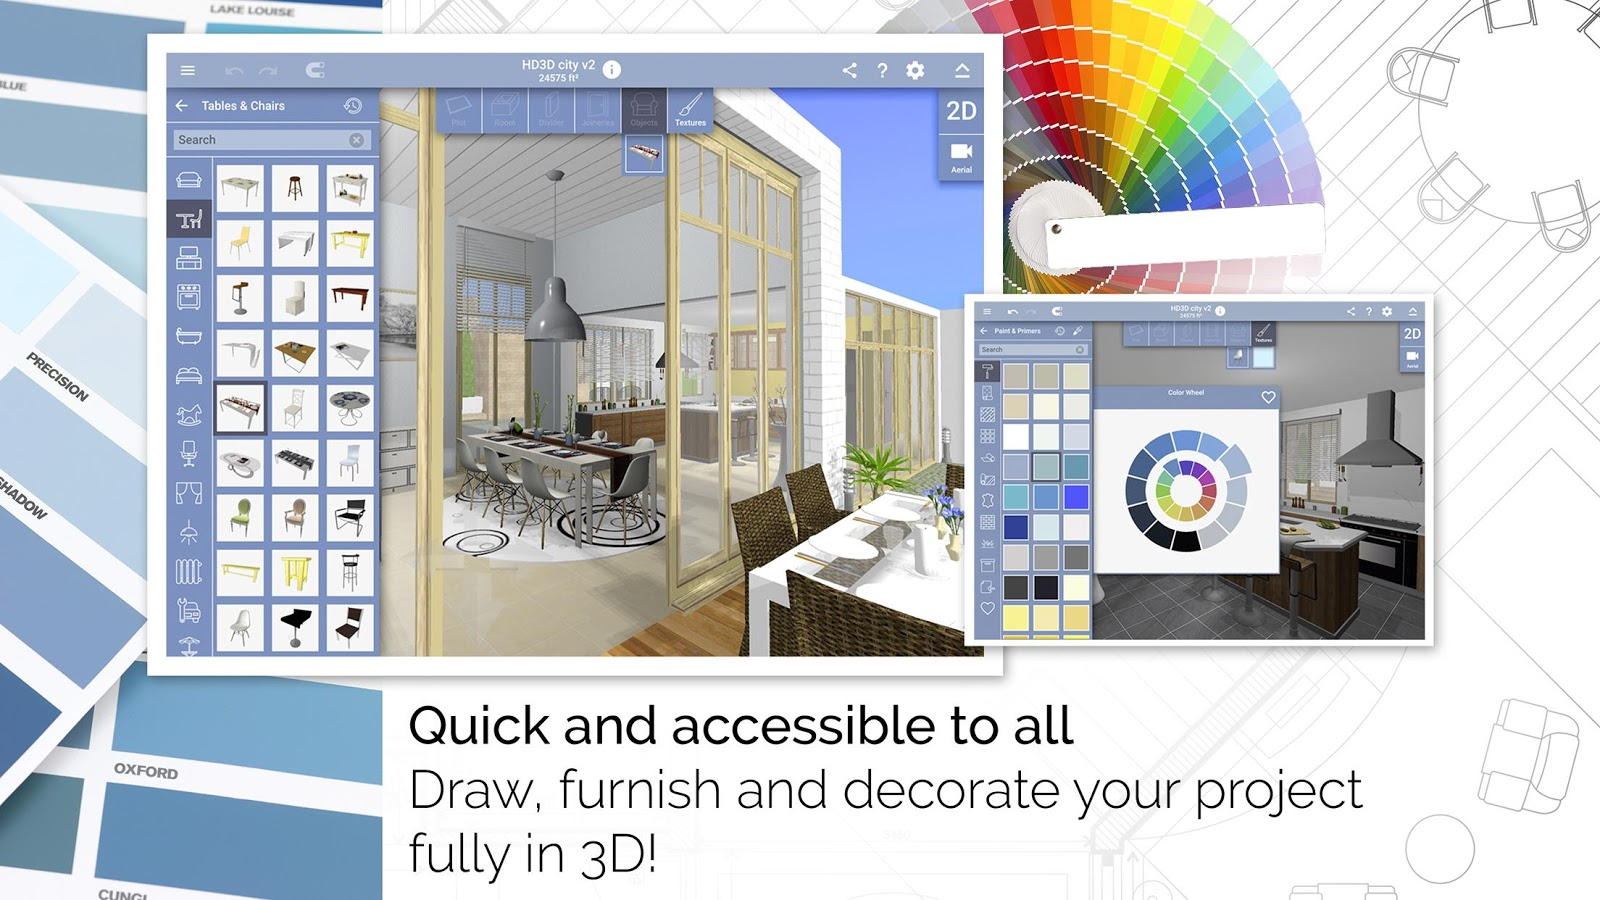 Home design 3d freemium android apps on google play Home interior design app